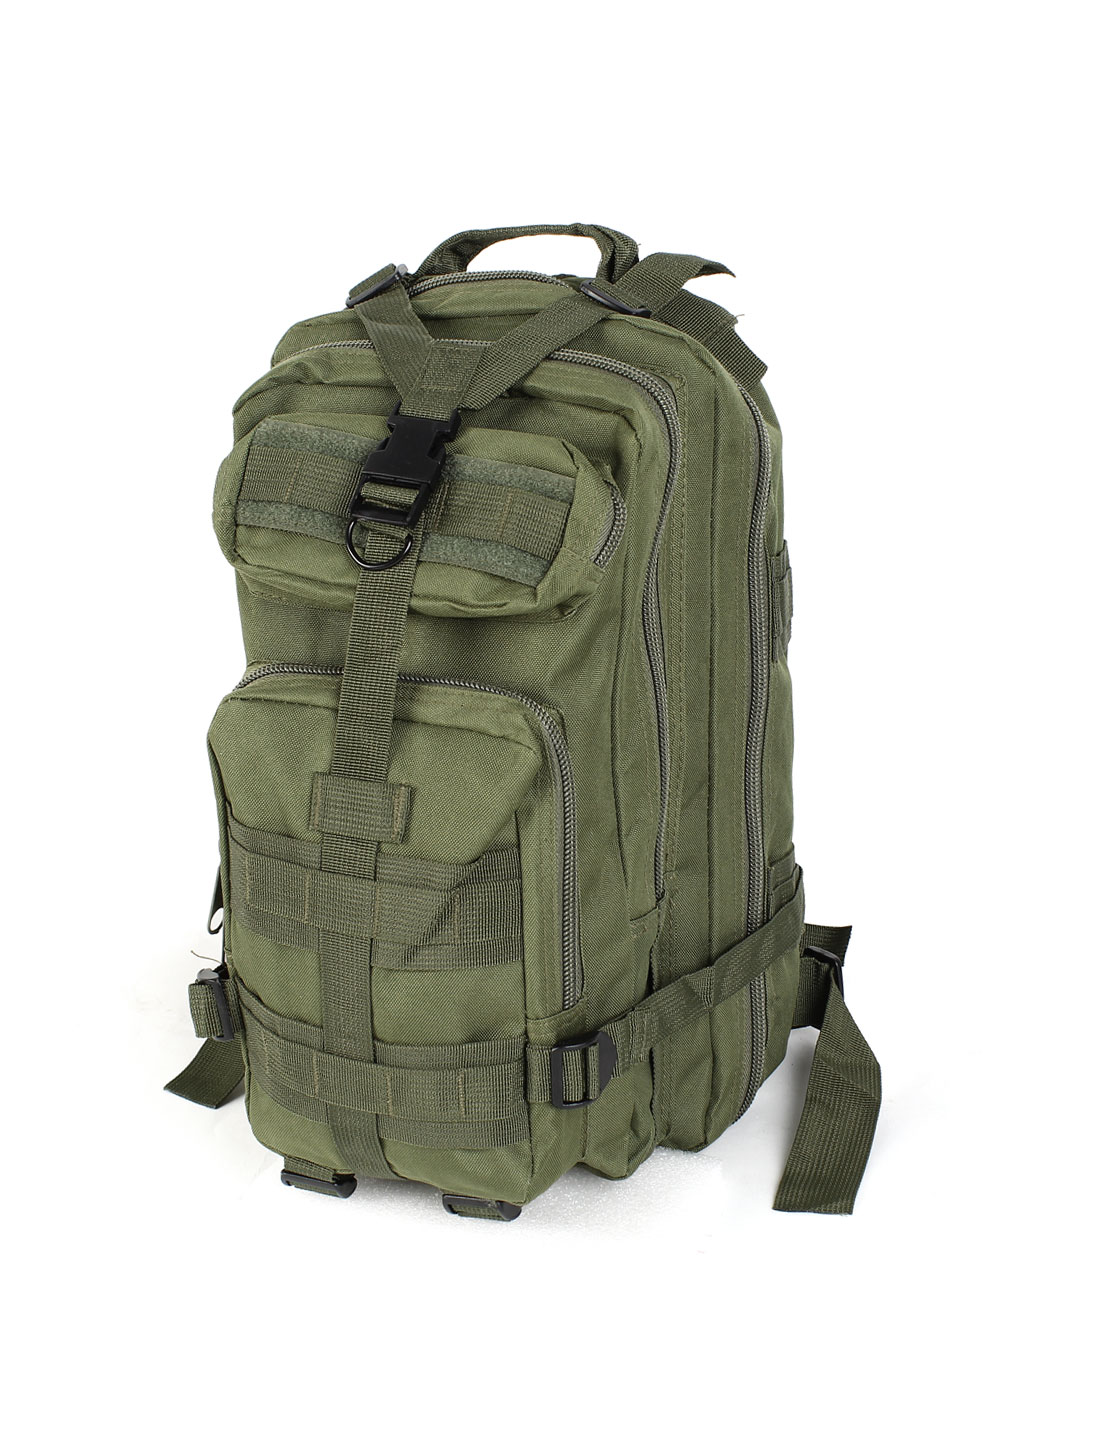 Unisex Military Tactical Rucksack Oxford Cloth Bag Camping Backpack Olive Green